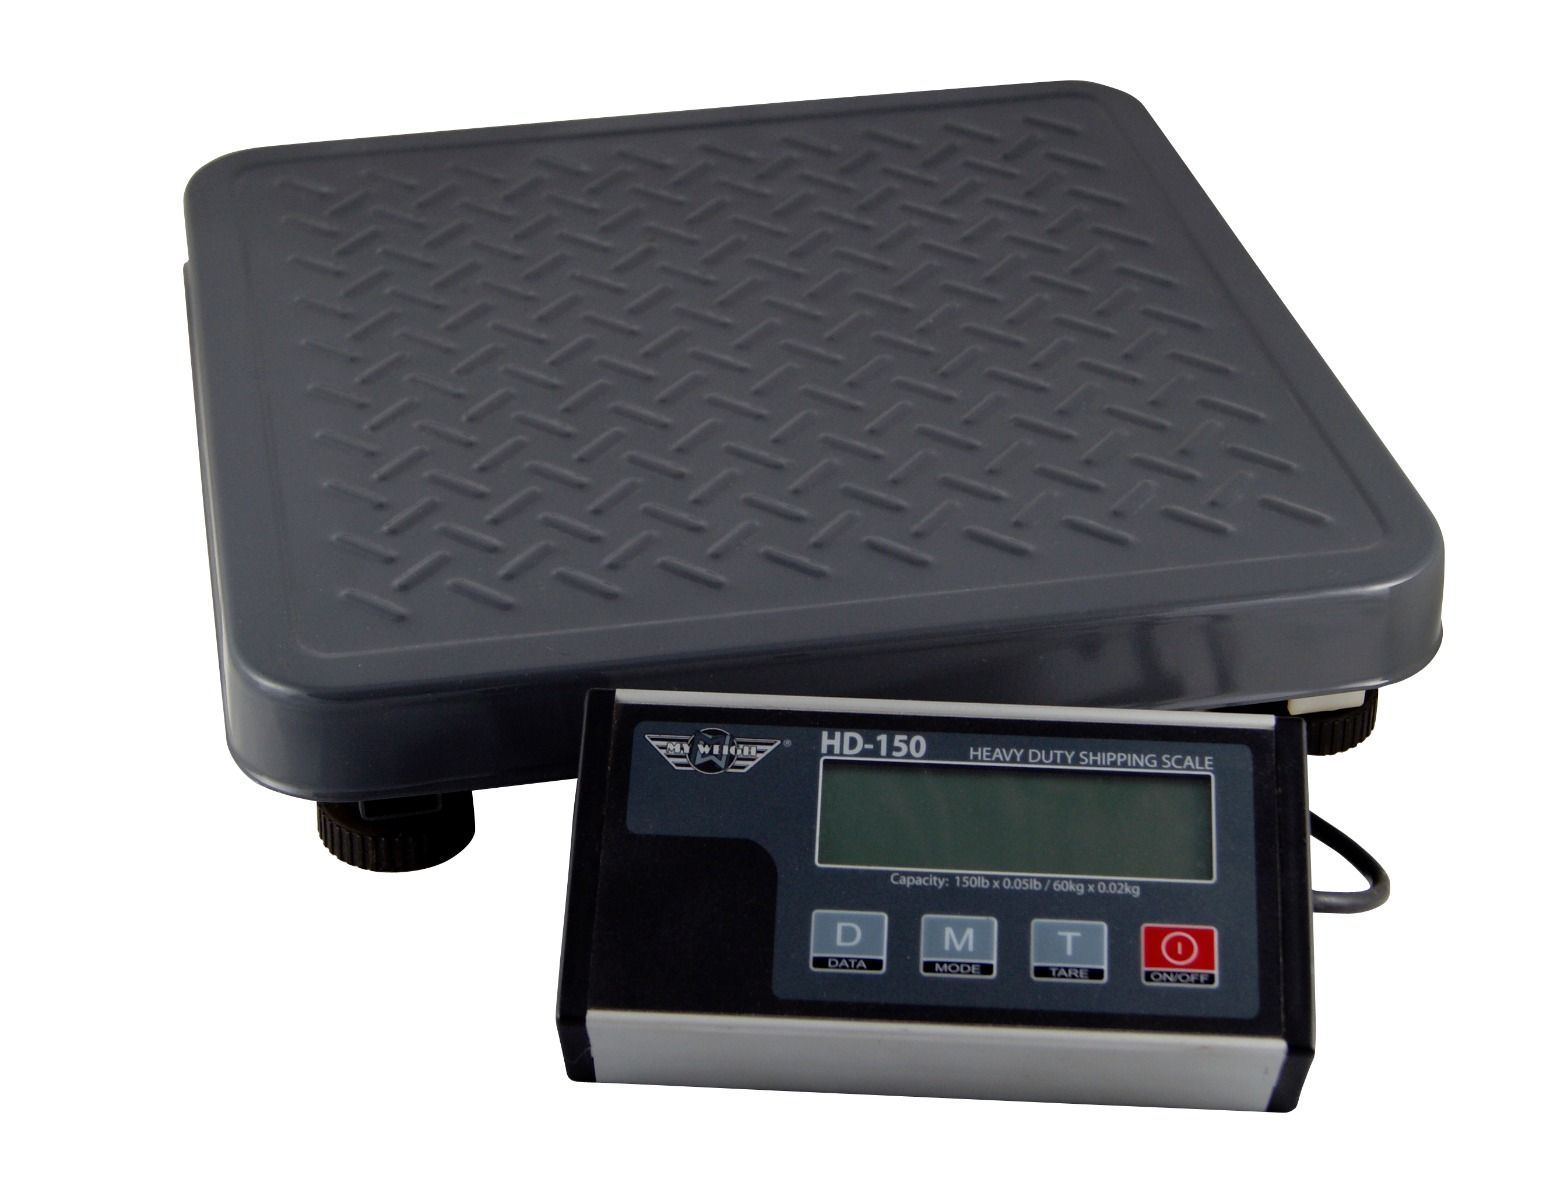 Shipping / Postal Scales